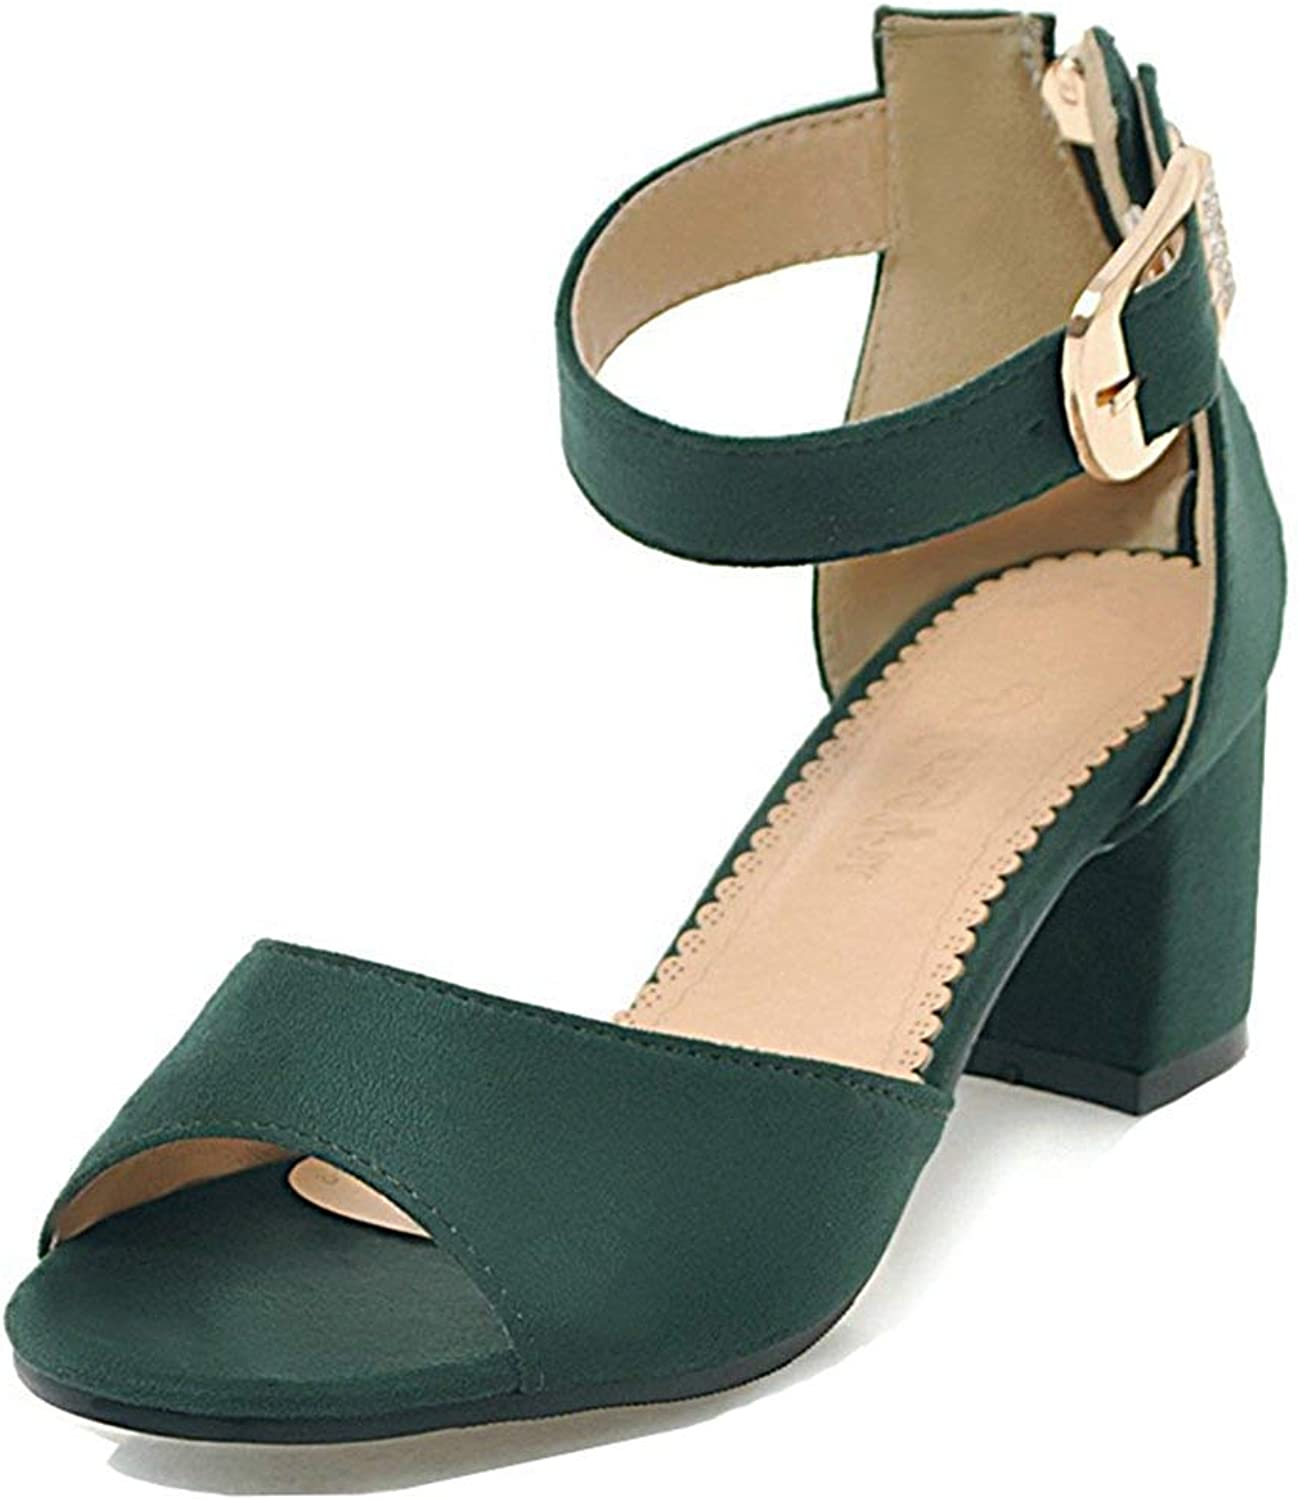 Unm Women's Comfort Fringed Sandals with Ankle Strap - Peep Toe Buckled - Zipper Mid Chunky Heels